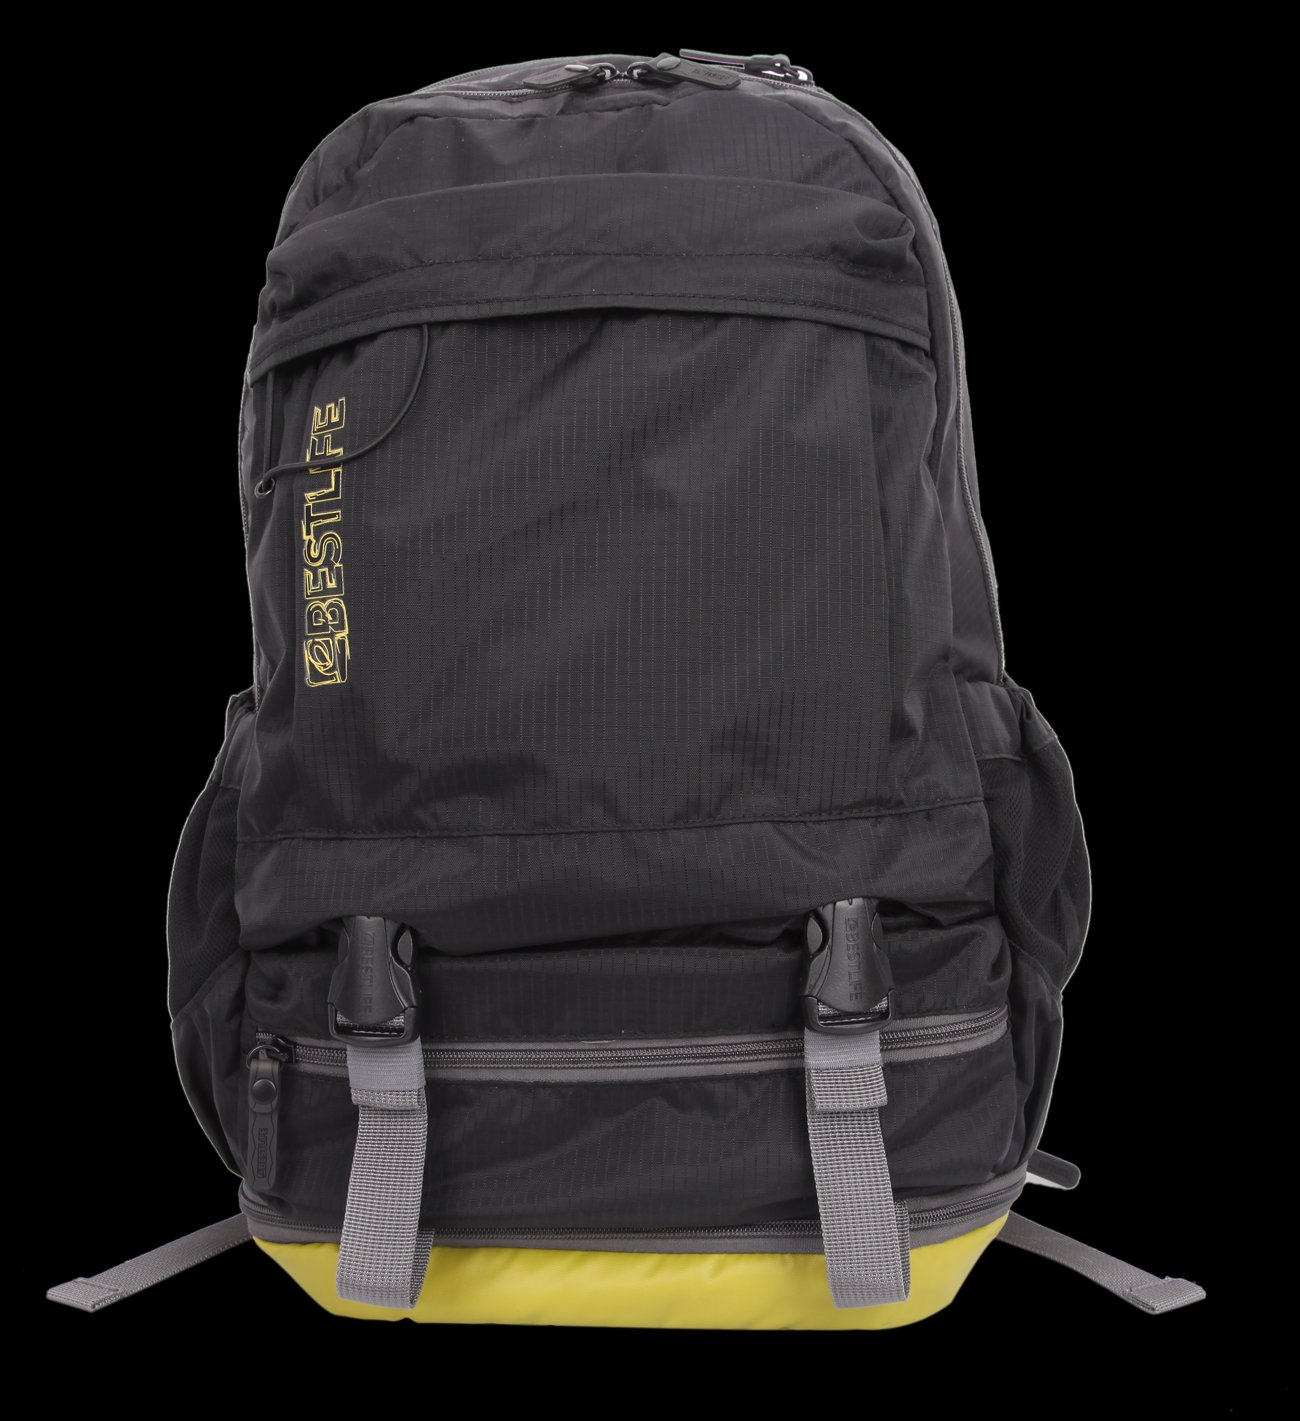 Bestlife Backpack BB-3159-15.6'' (Black and Yellow)